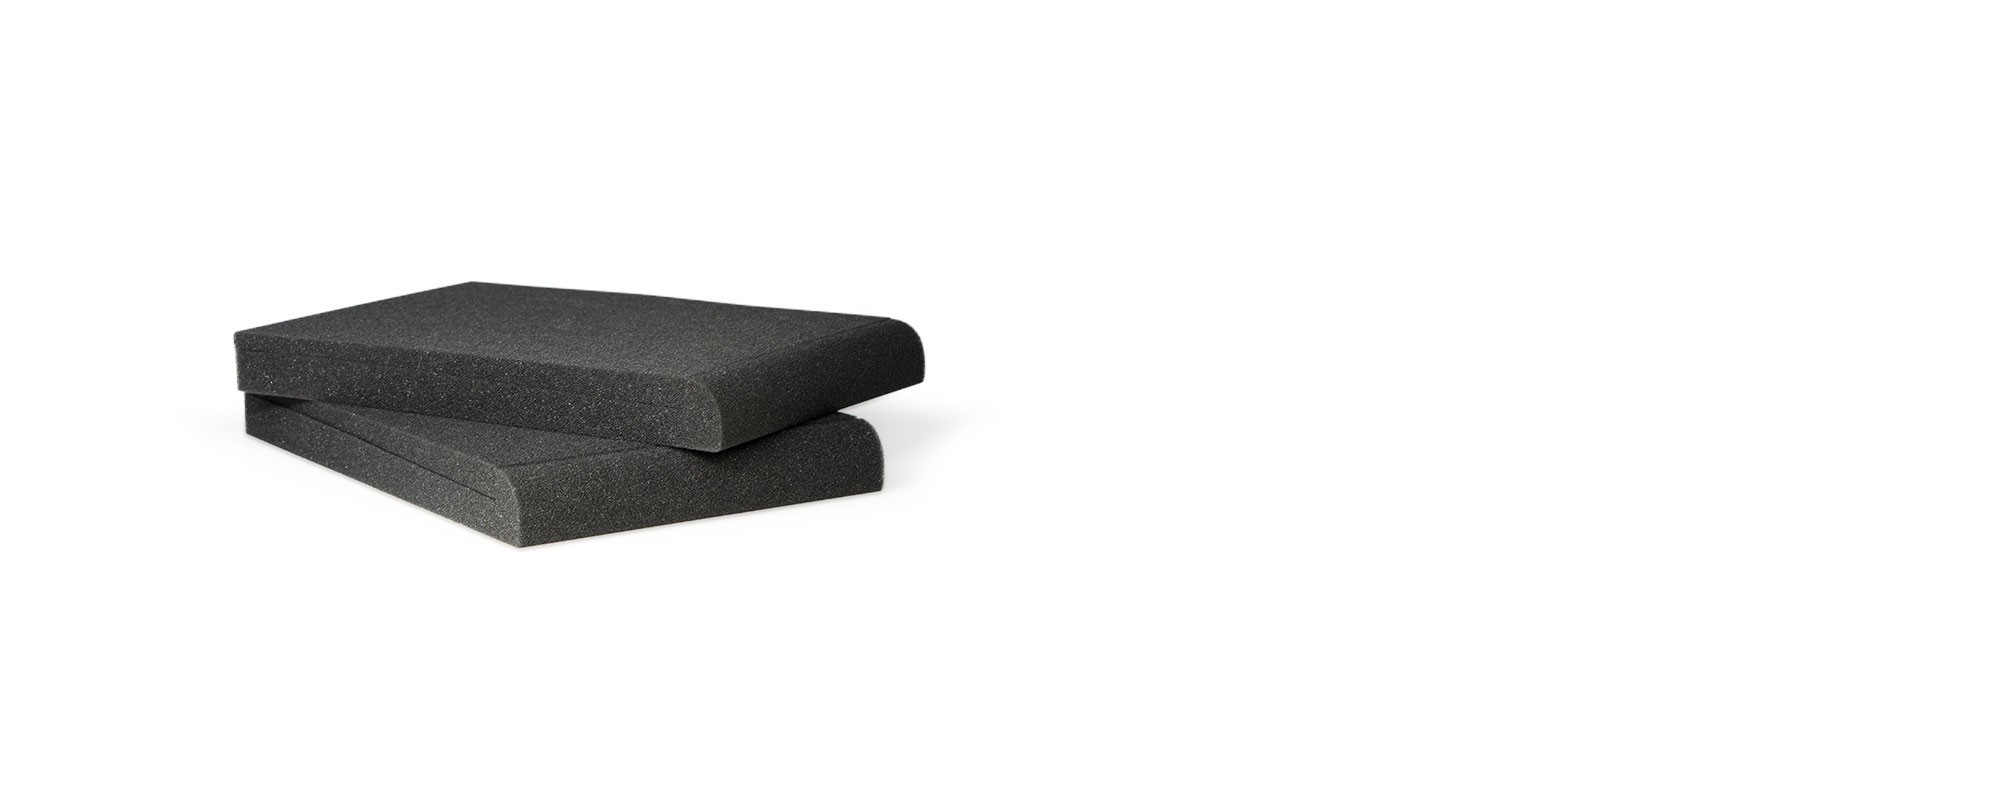 High Density Foam Speaker Isolation Pads - alternate